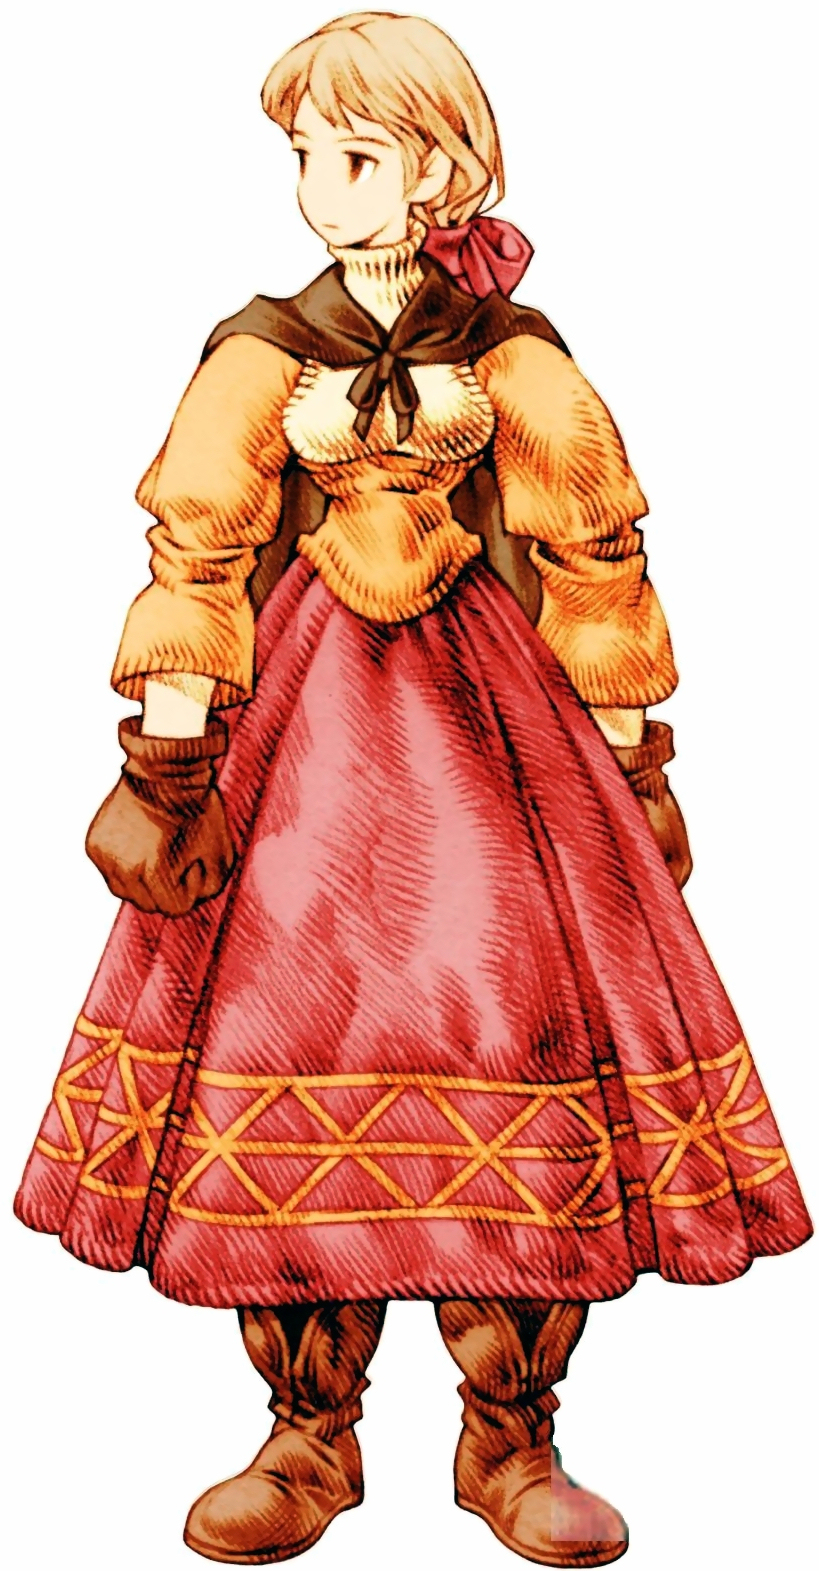 http://images2.wikia.nocookie.net/__cb20100705235031/finalfantasy/images/3/3b/Fft-alma-beoulve.jpg